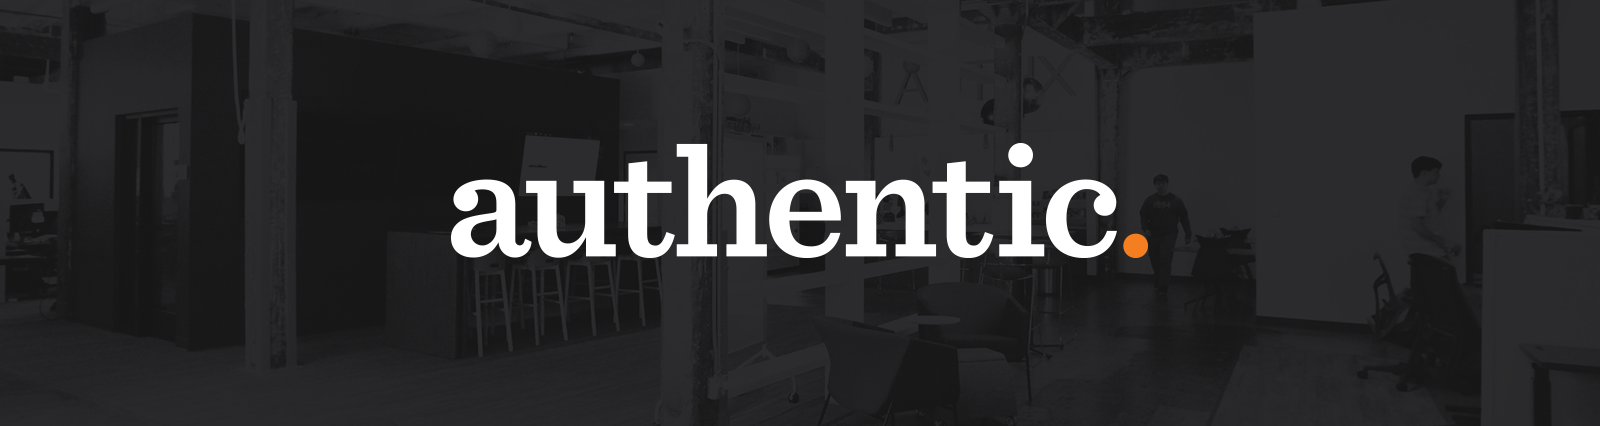 authentic agency